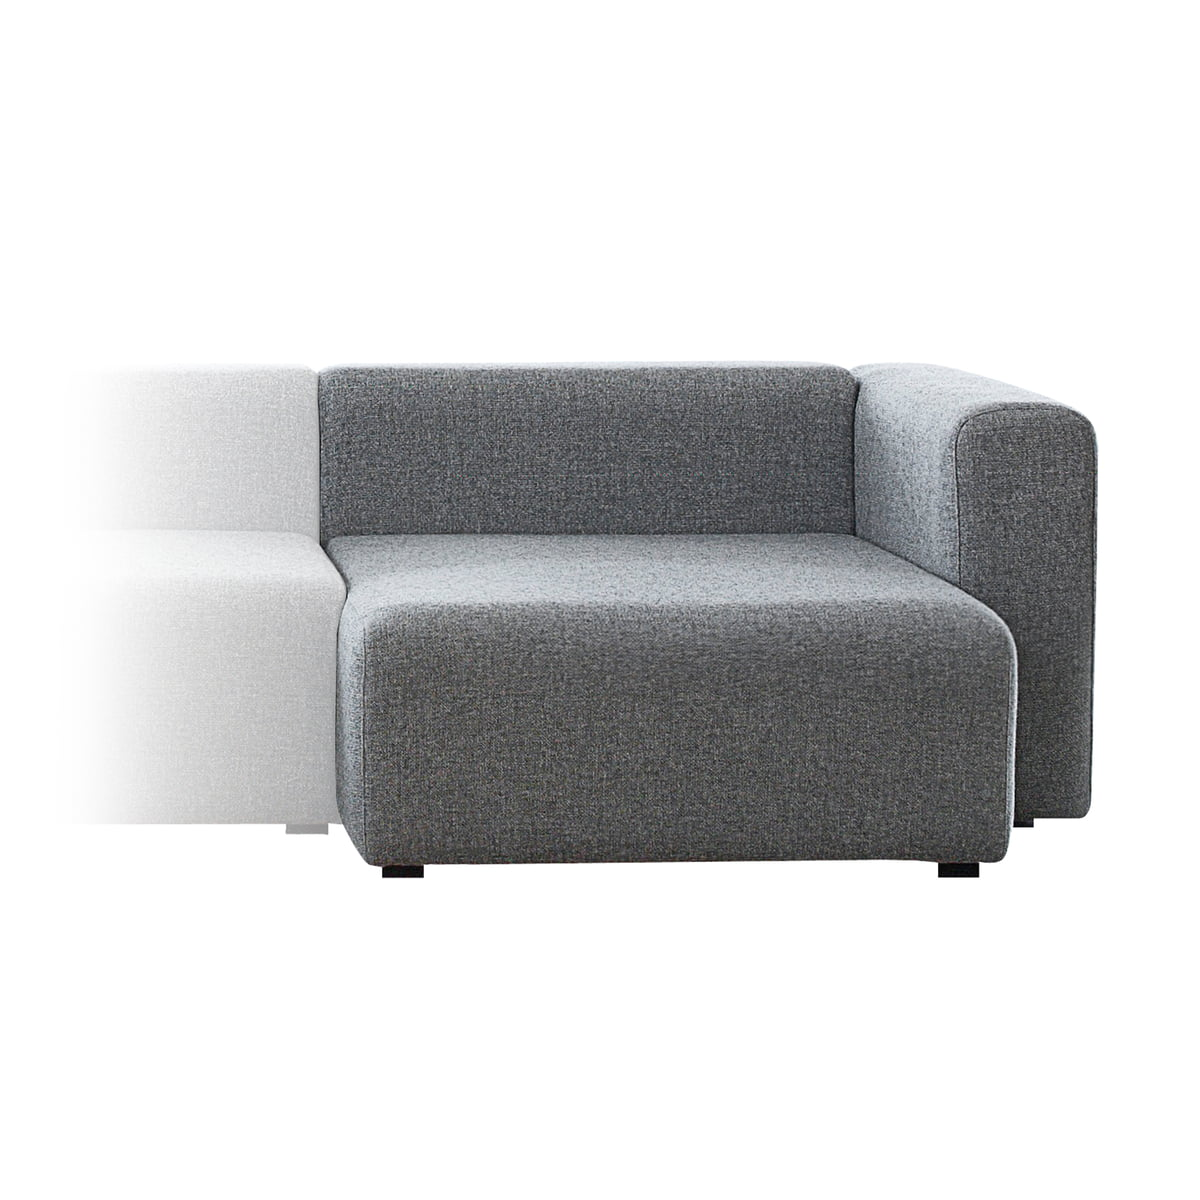 mags sofa modules wide by hay. Black Bedroom Furniture Sets. Home Design Ideas